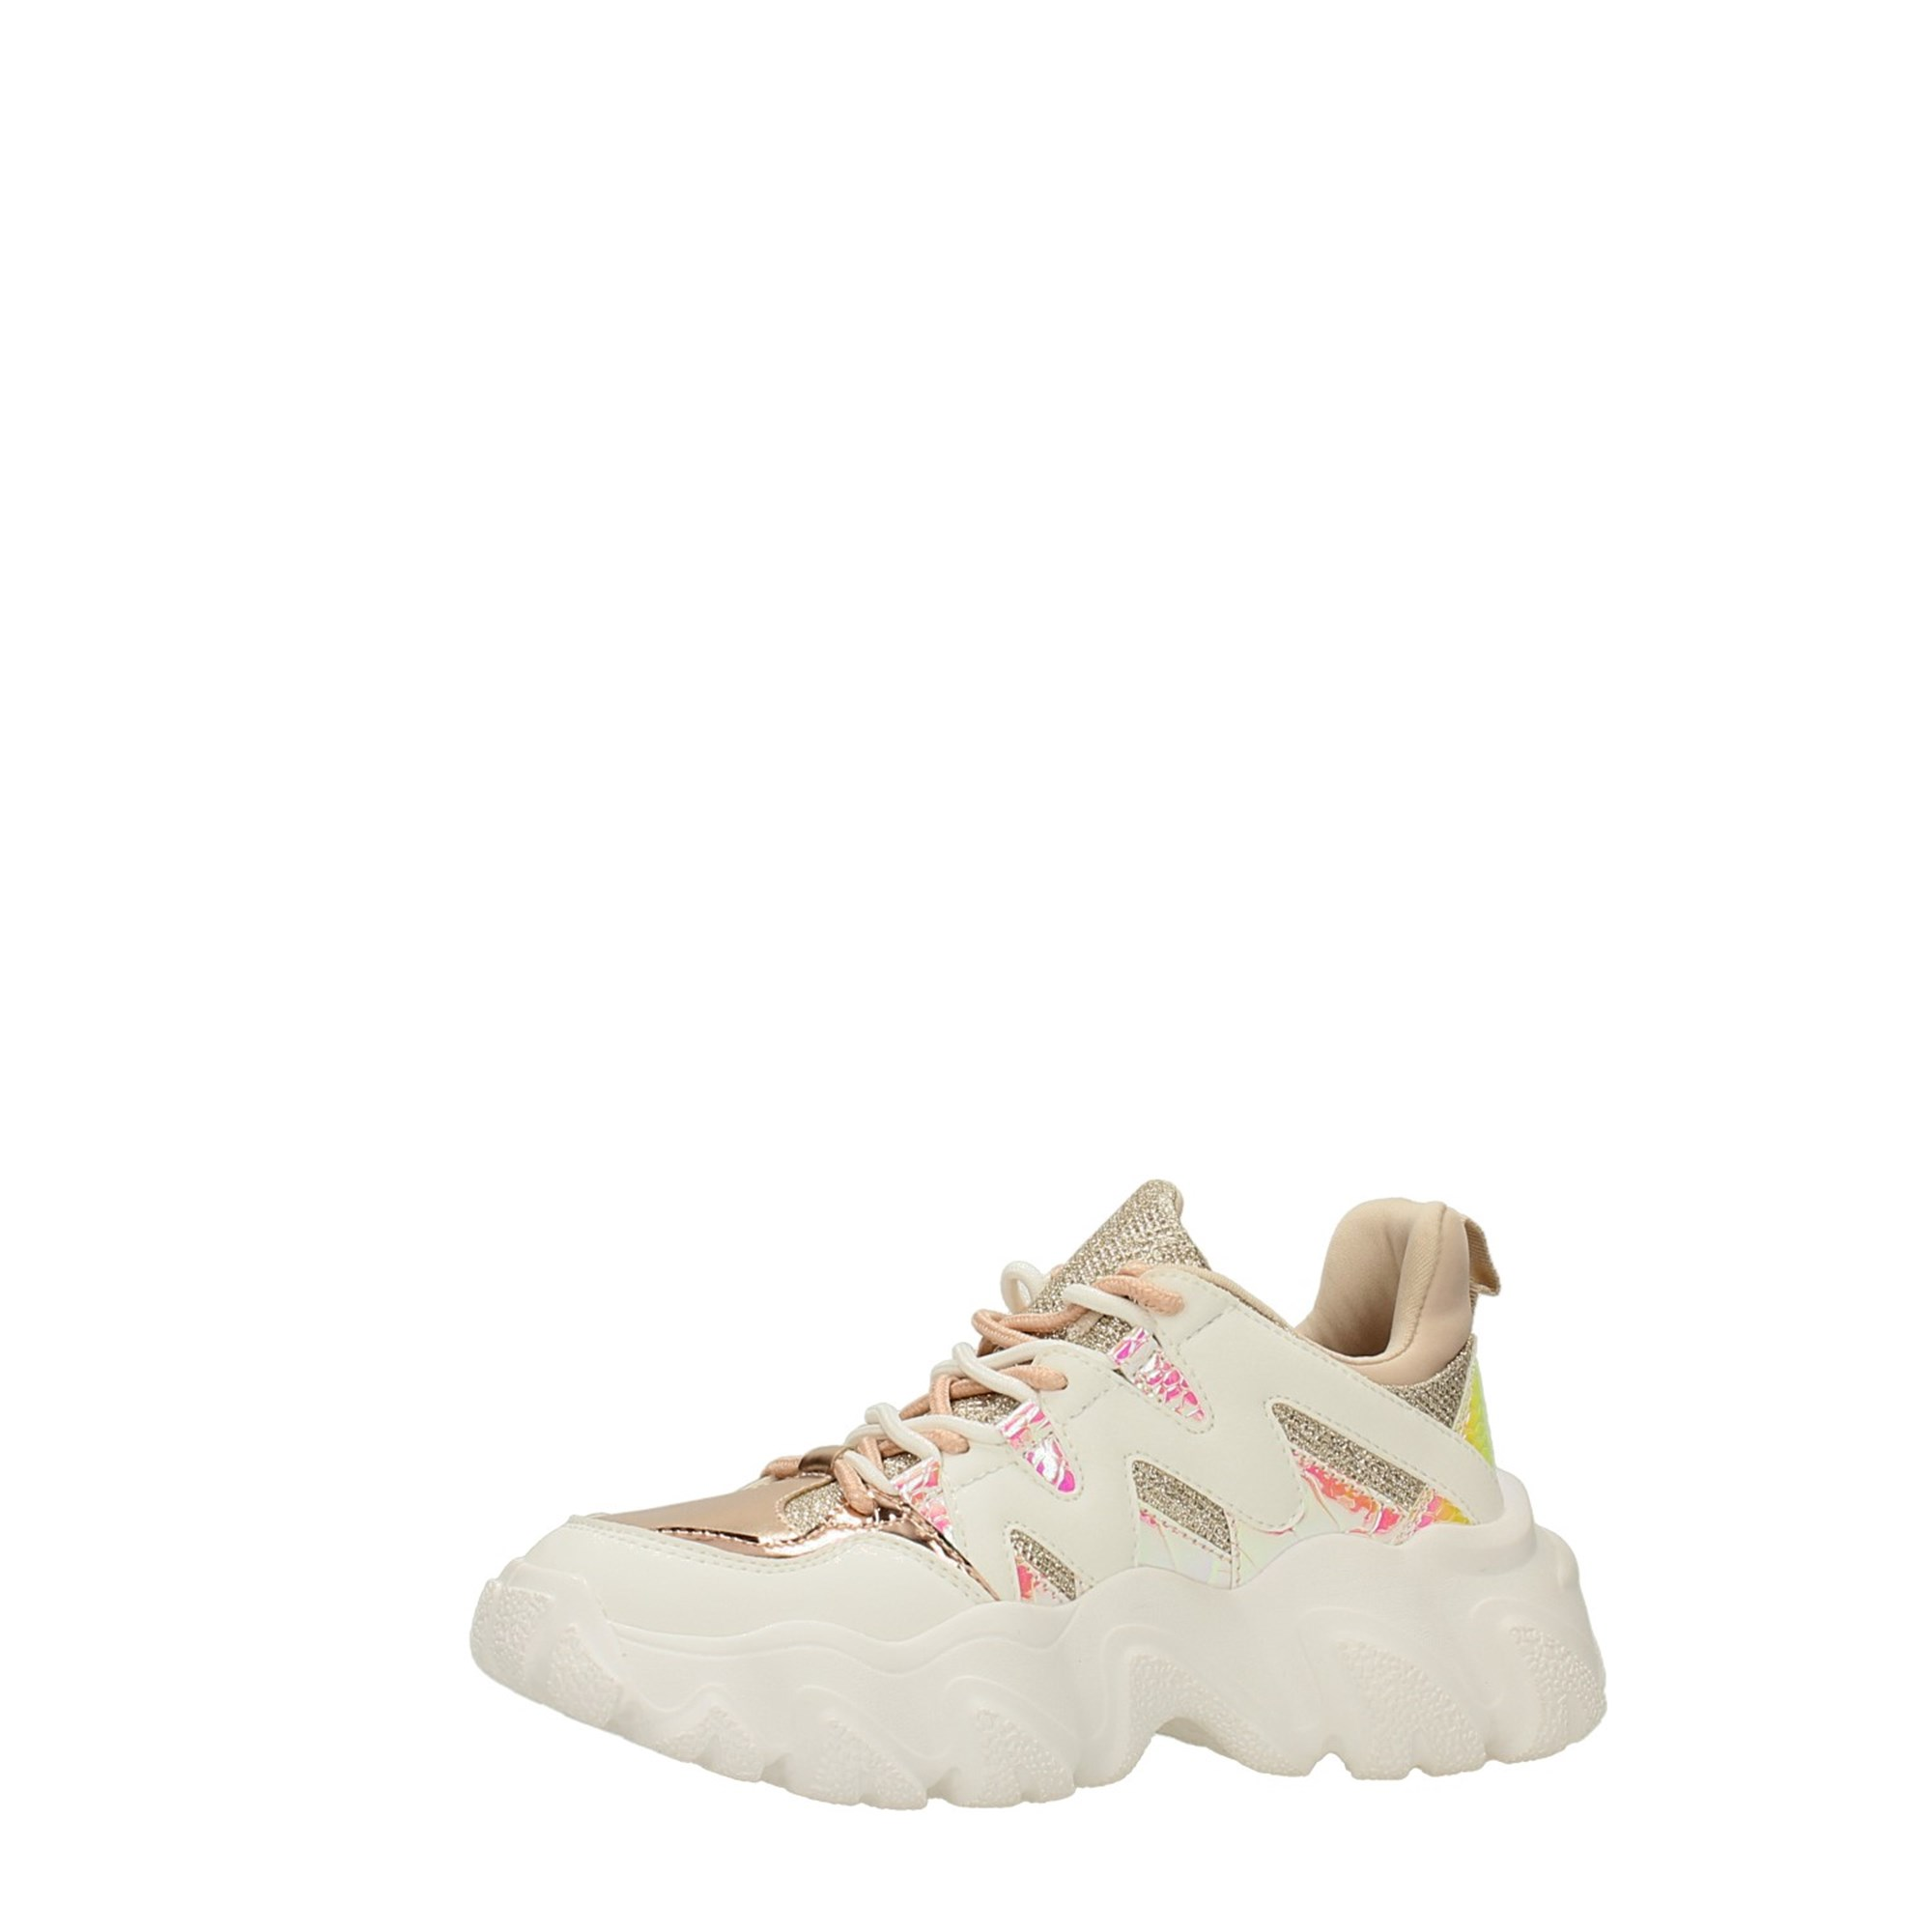 Tata Italia Shoes Woman Sneakers 1012401A